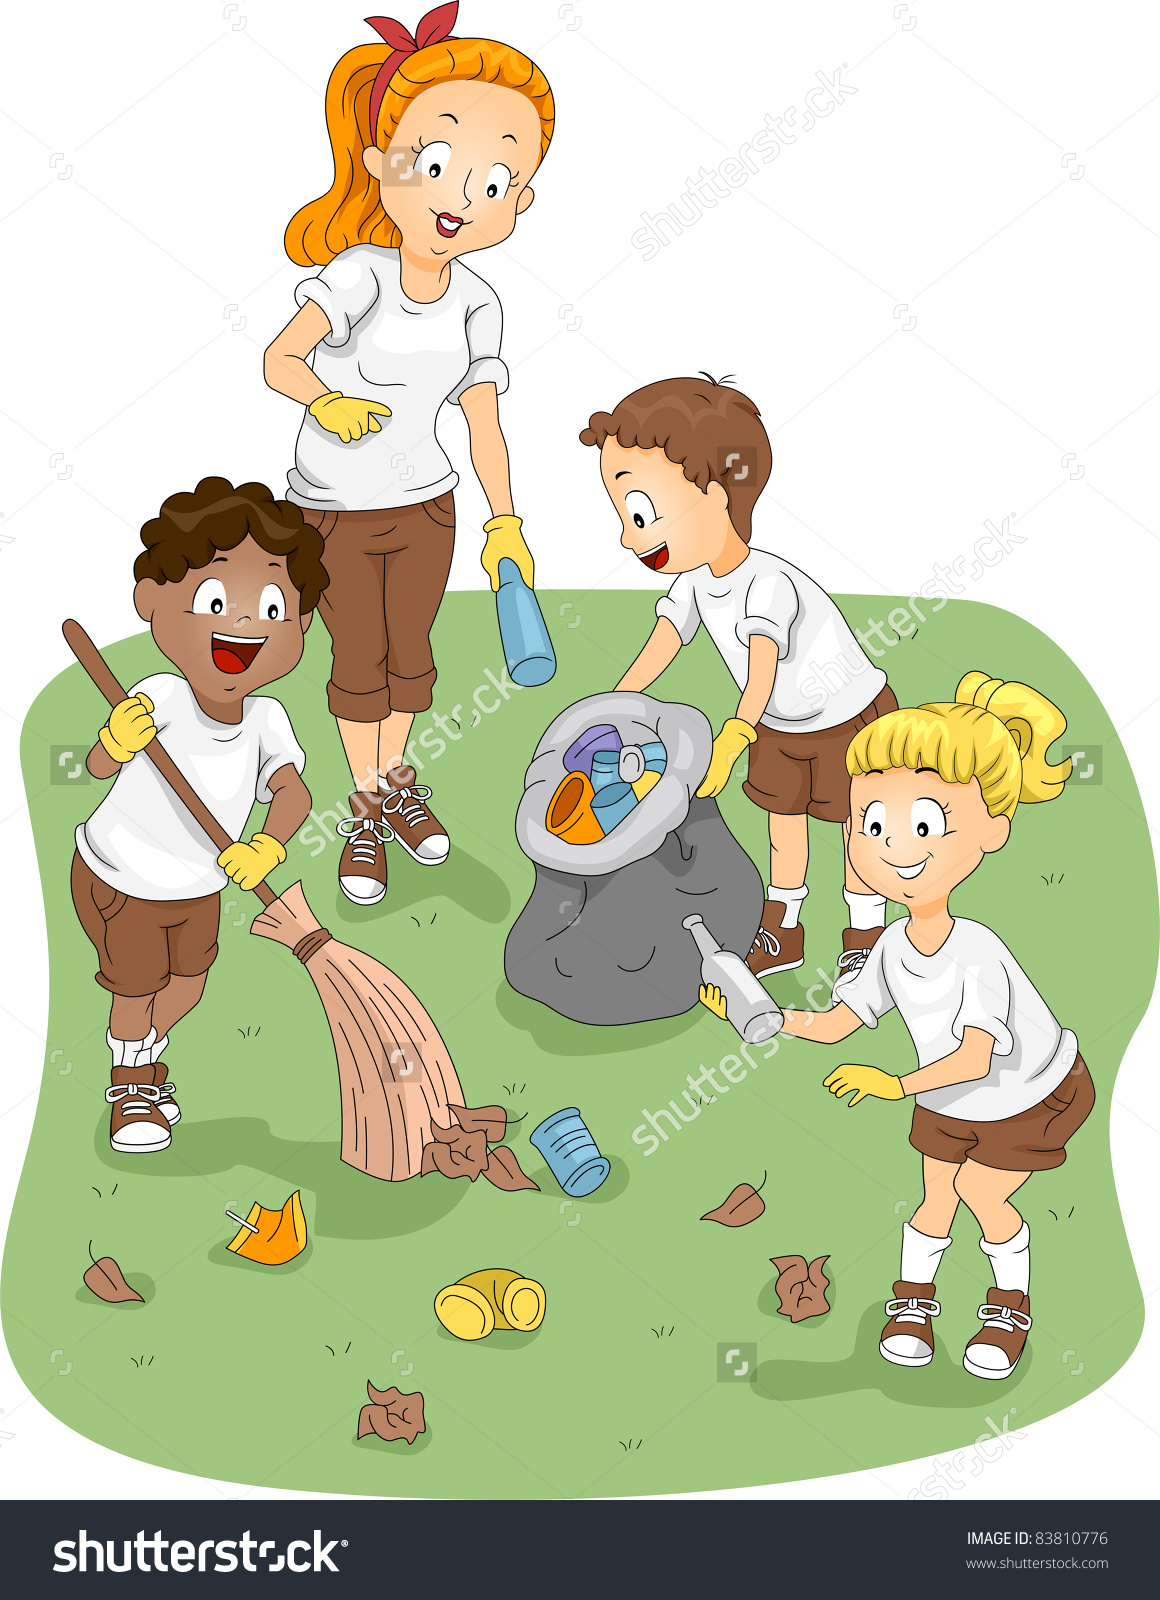 Cleaning with kids clipart clip stock Kids cleaning the environment clipart - ClipartFest clip stock